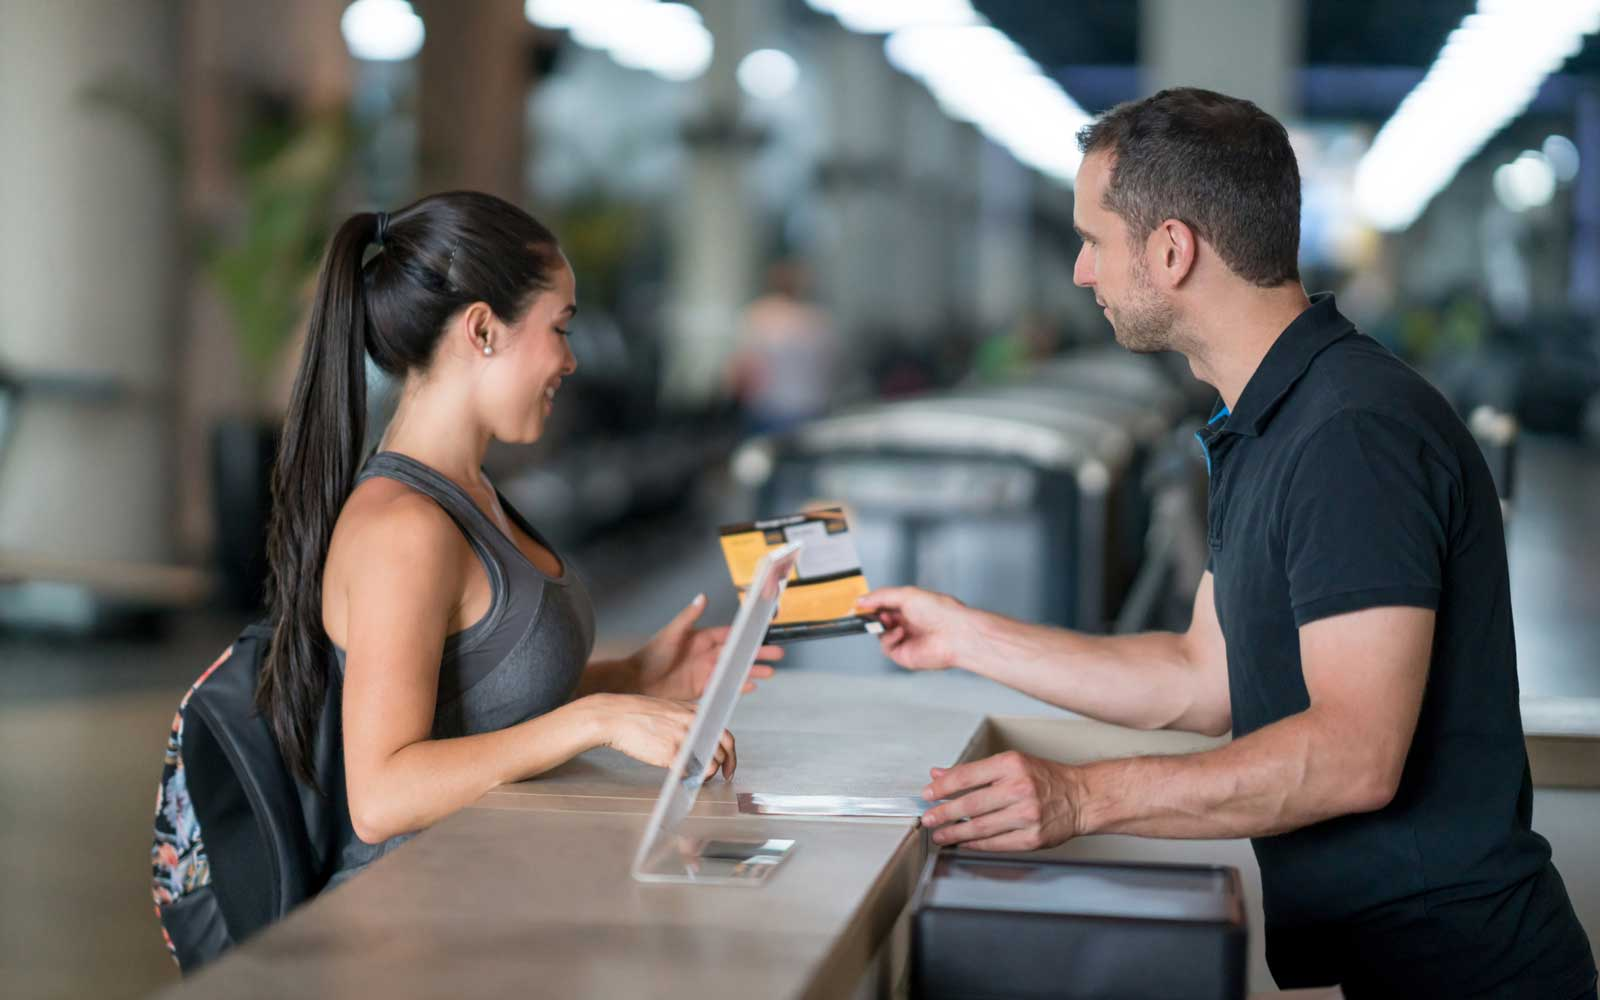 Woman at the gym talking to receptionist about membership plans